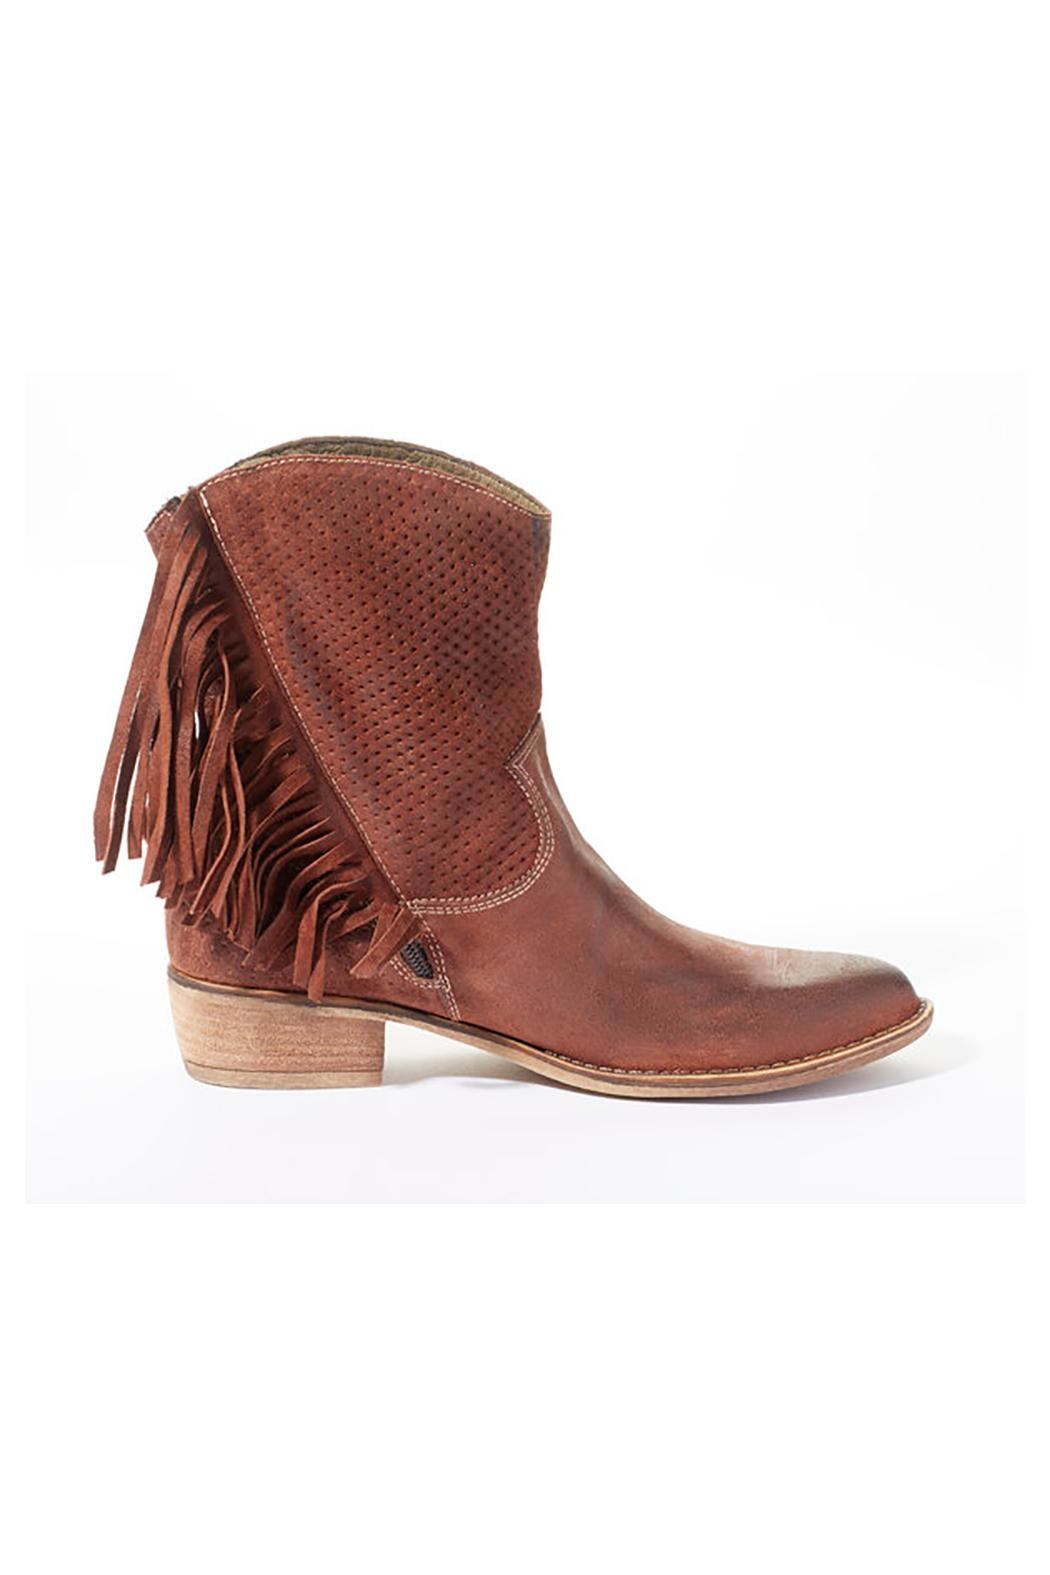 Rebel With Cause Fringe Leather Boots - Side Cropped Image